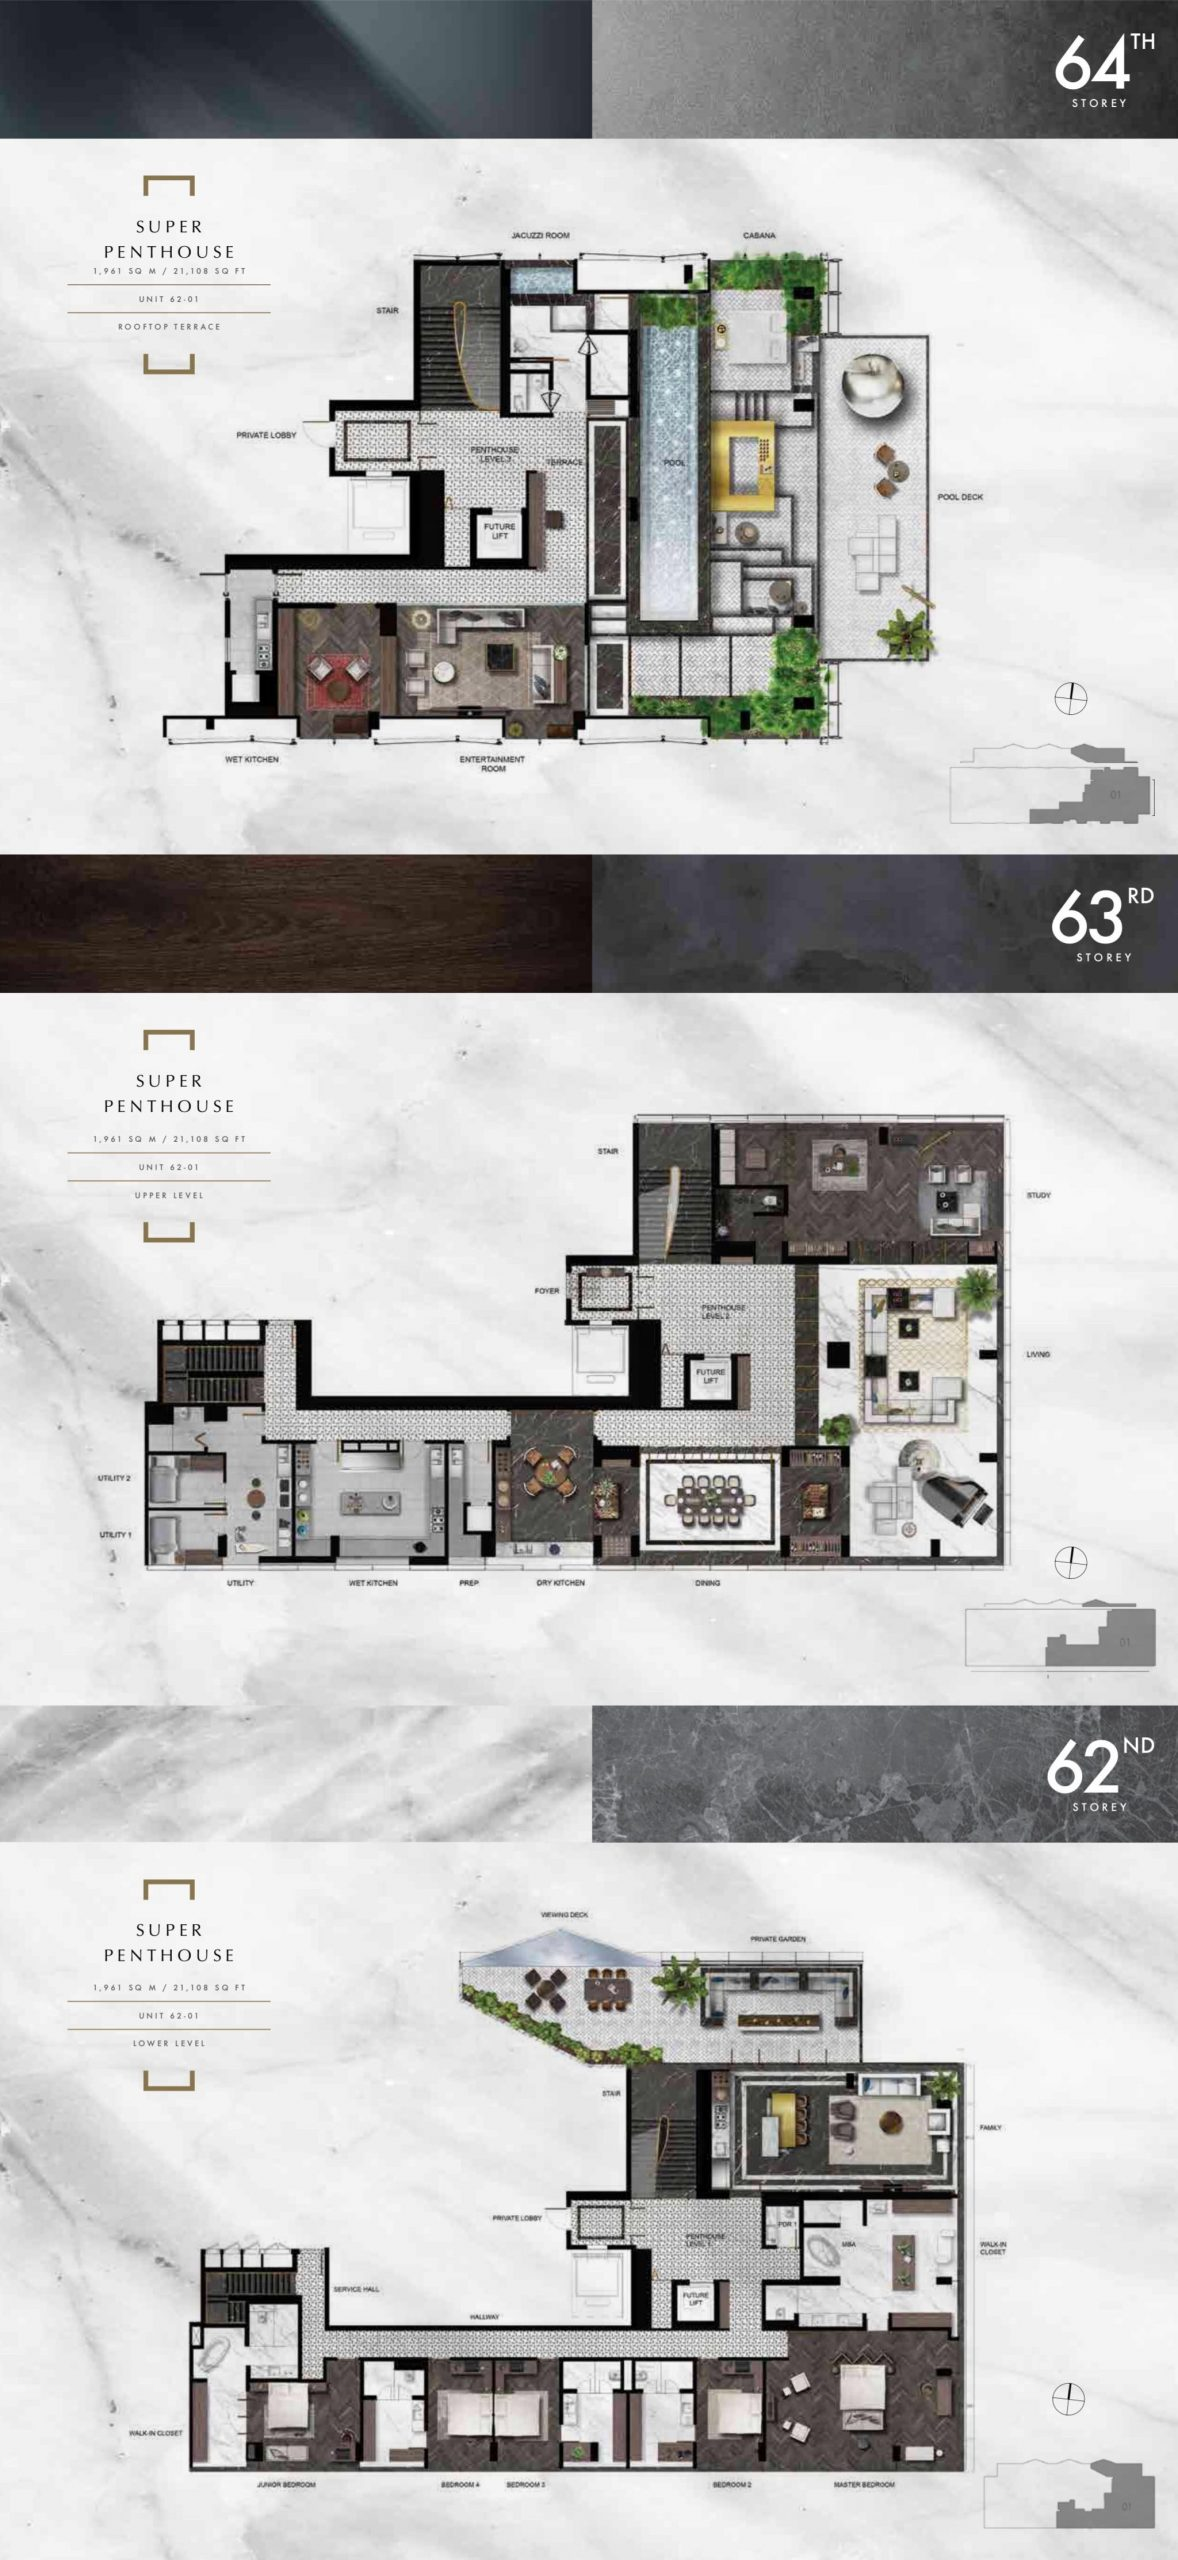 wallich residence super penthouse floor plan